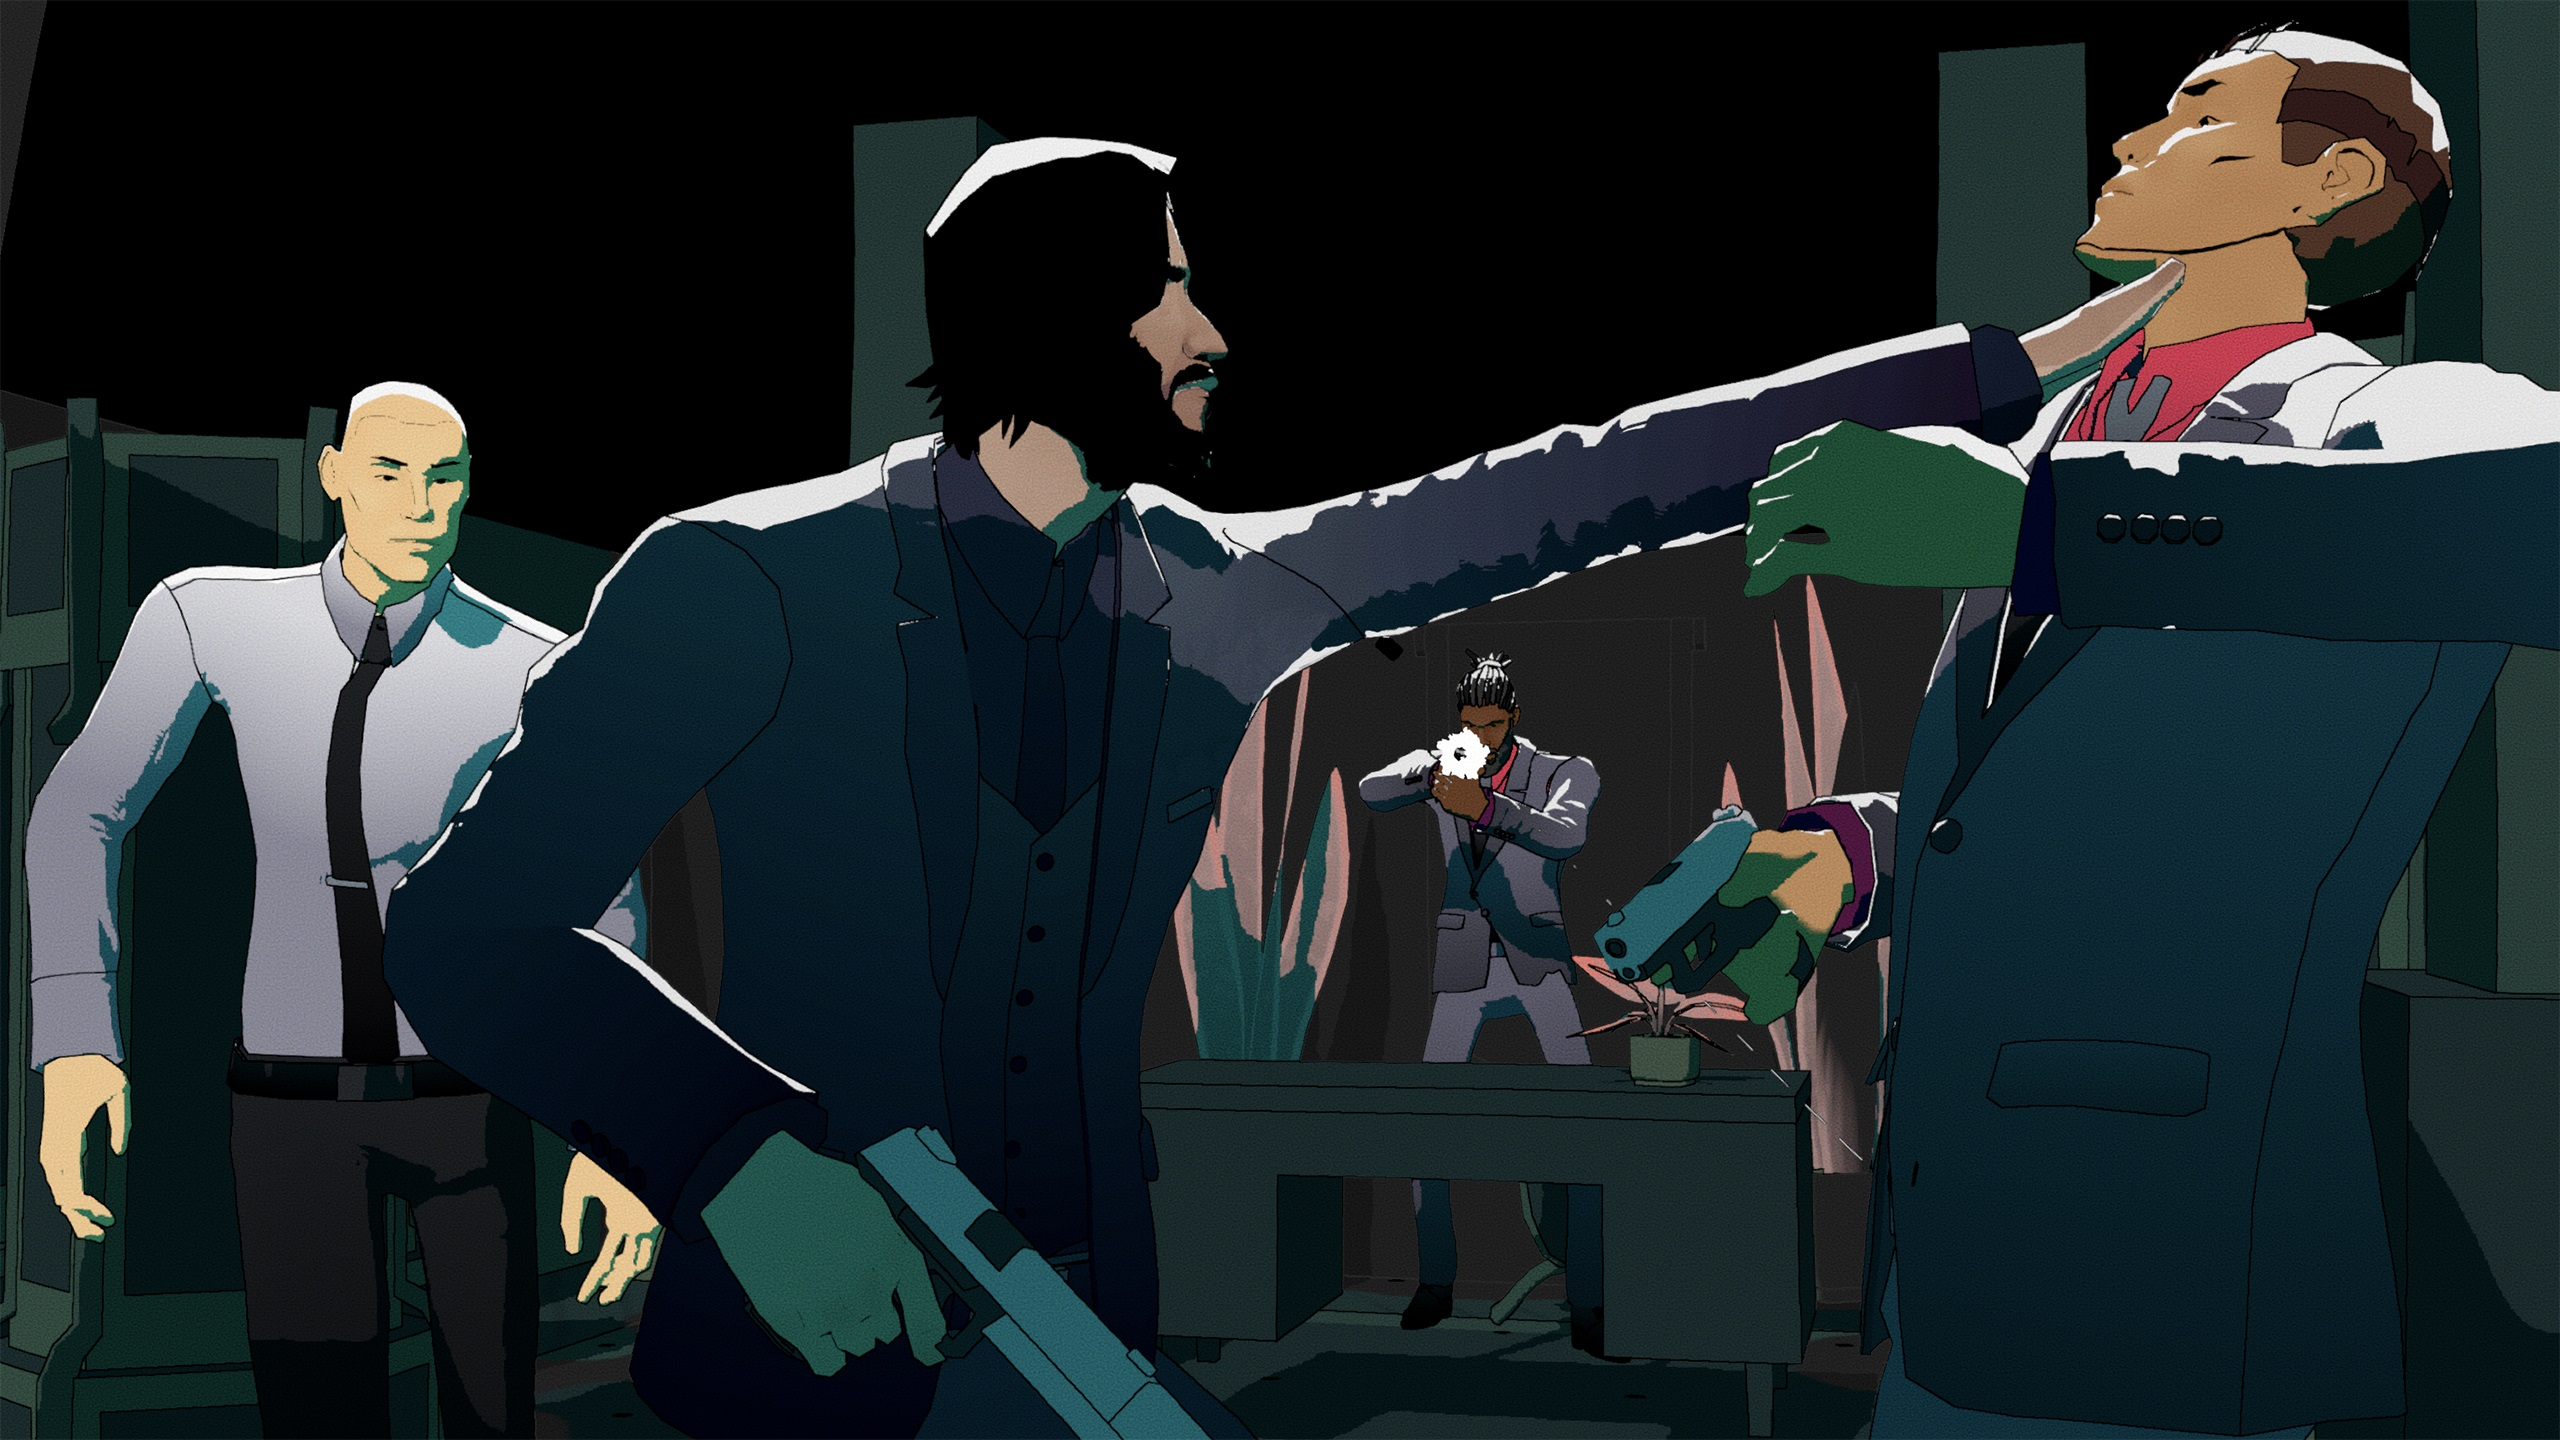 John Wick is getting an officially-licensed XCOM-like strategy game screenshot